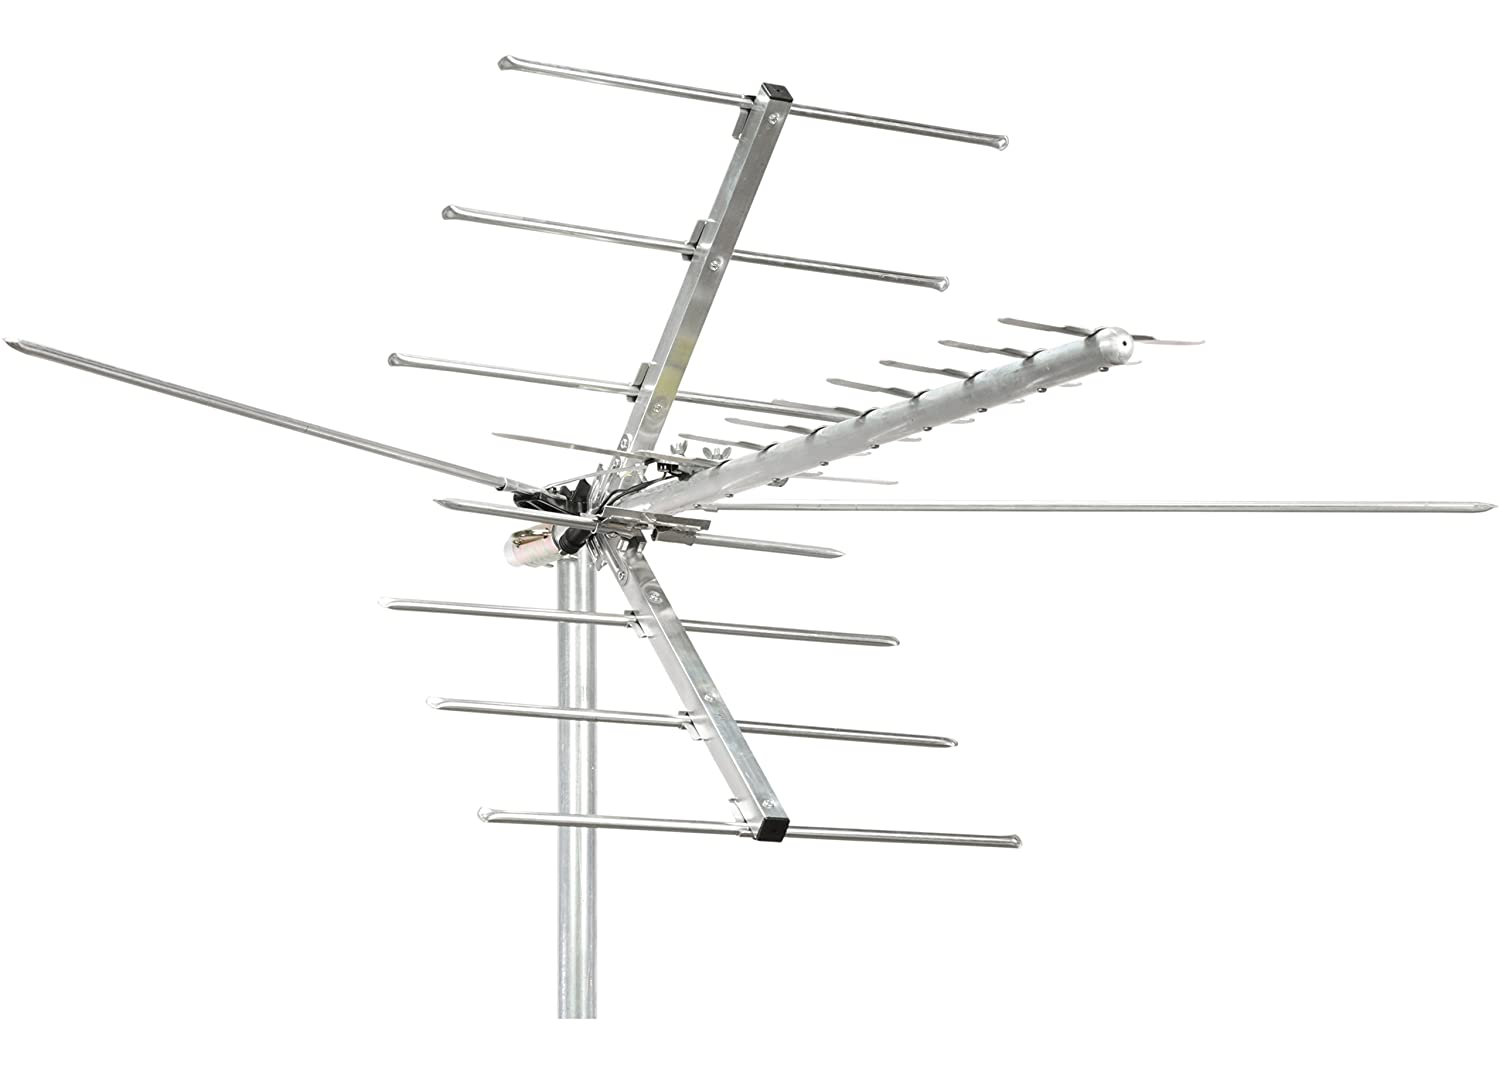 Top 5 Best Outdoor TV Antenna Consumer Reports - Buyer's Guide 2